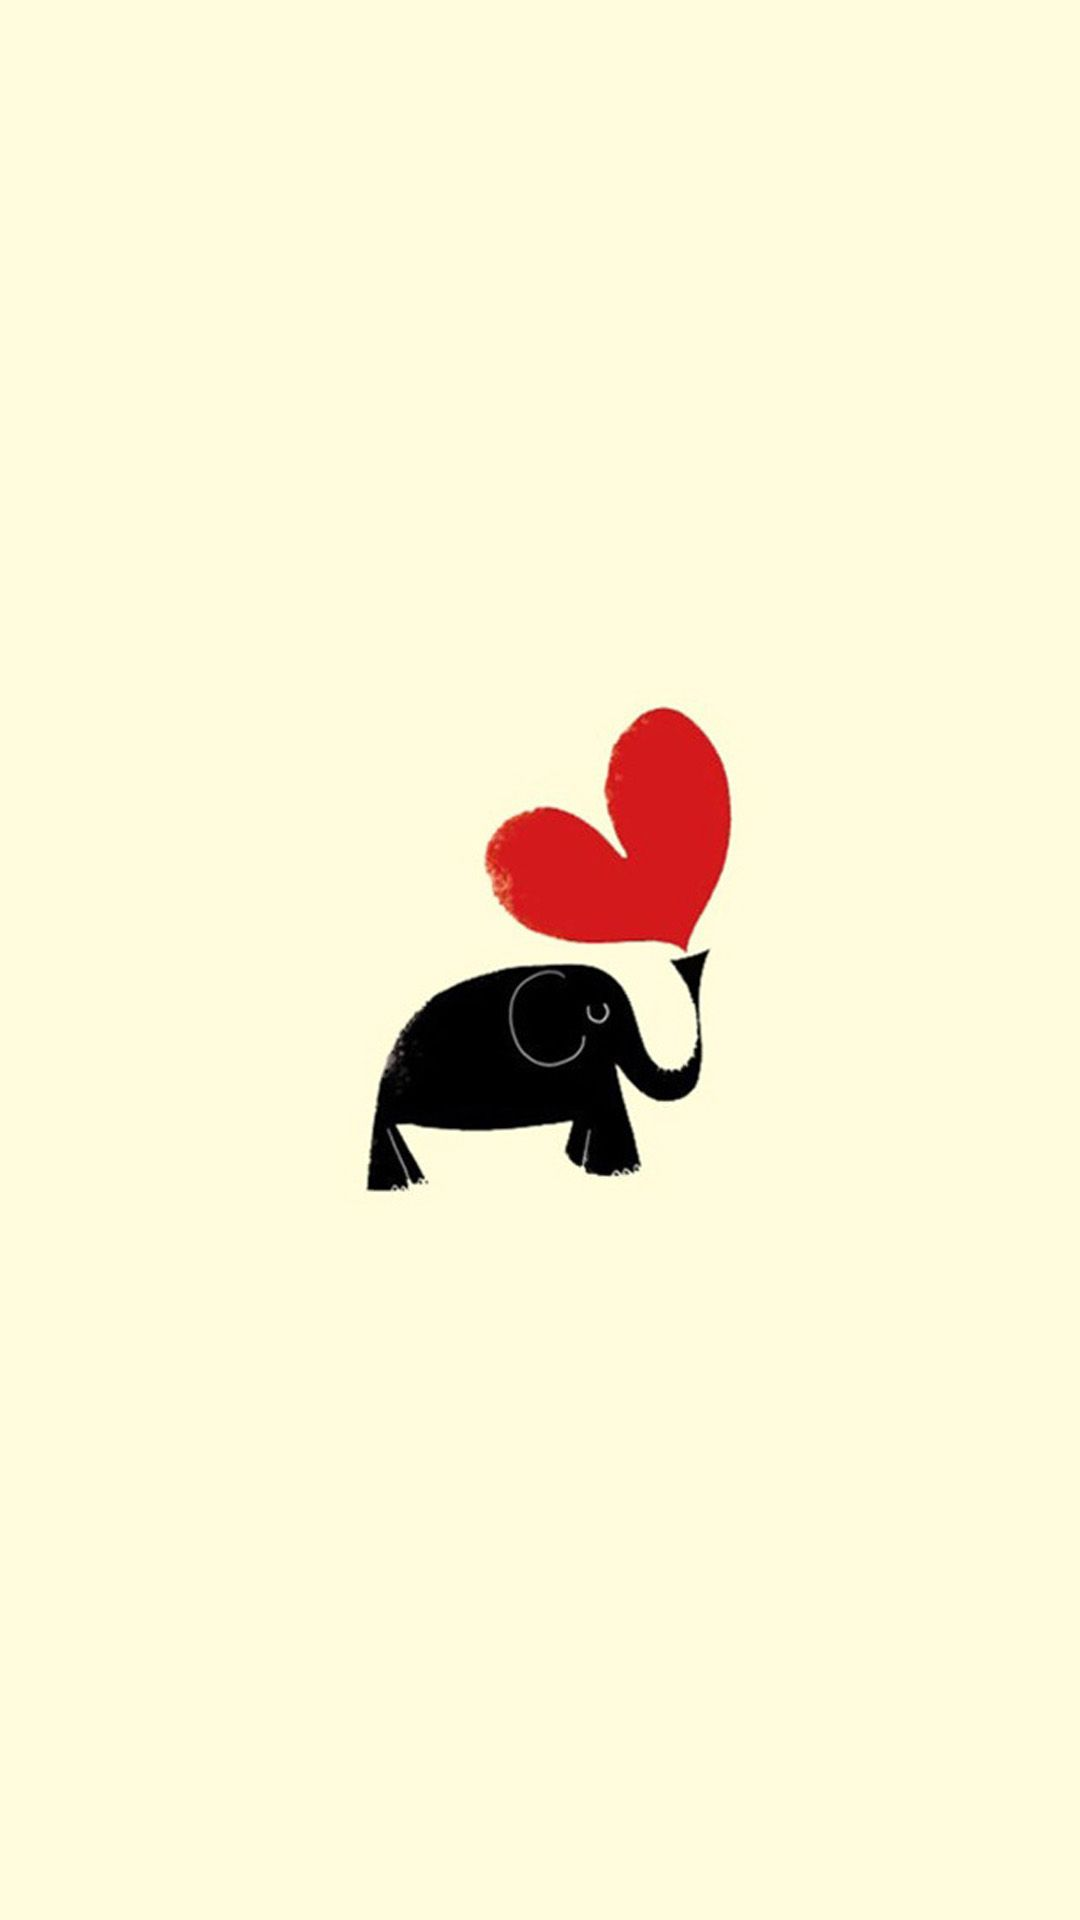 cute cartoon Love Wallpaper For Iphone : TAP AND GET THE FREE APP! Minimalistic Lovely Elephant Yellow Love cute Heart Unicolor Simple HD ...